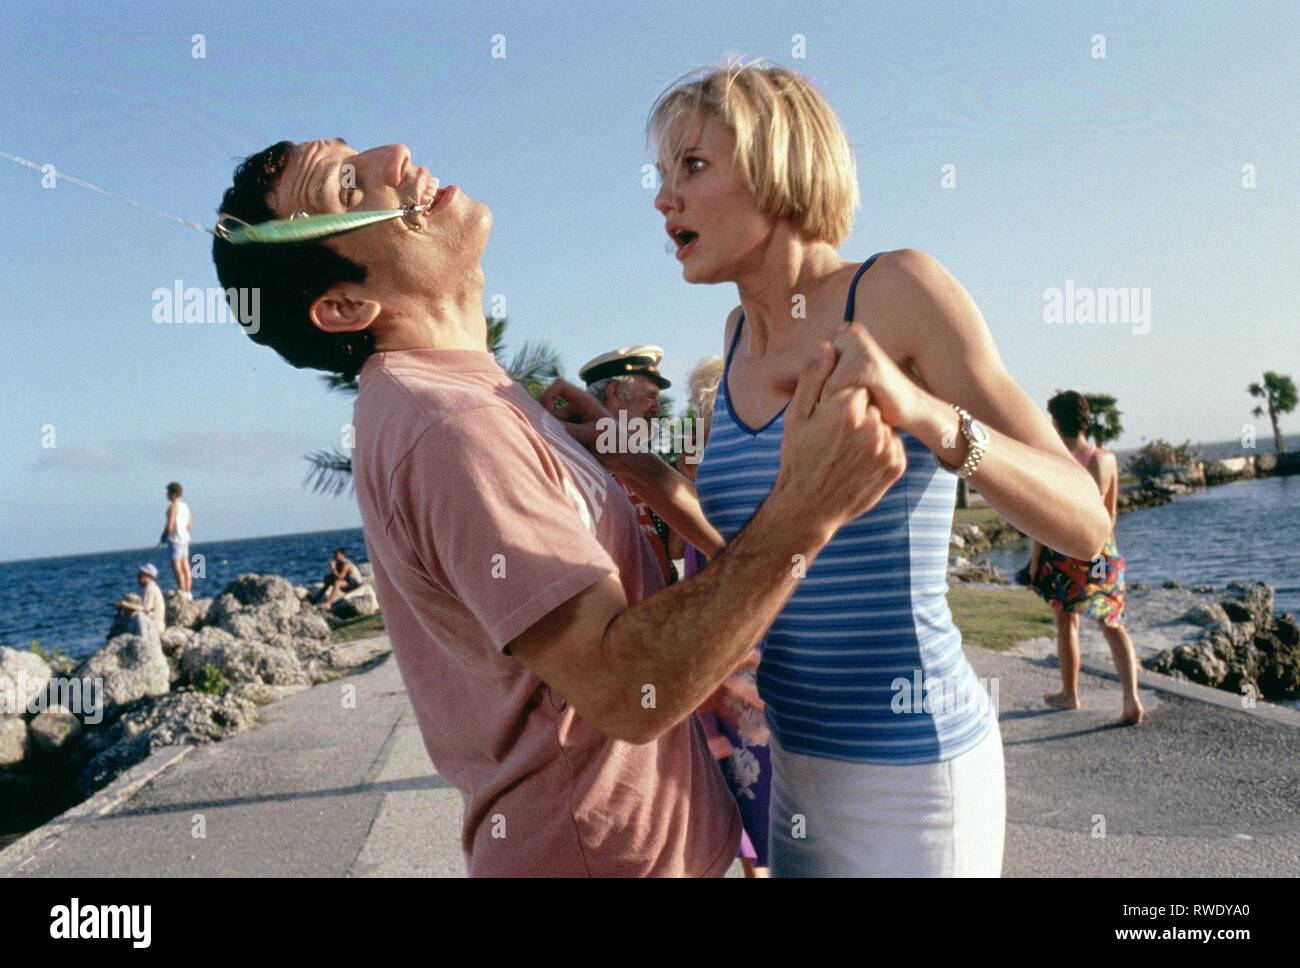 BEN STILLER,CAMERON DIAZ, THERE'S SOMETHING ABOUT MARY, 1998 - Stock Image